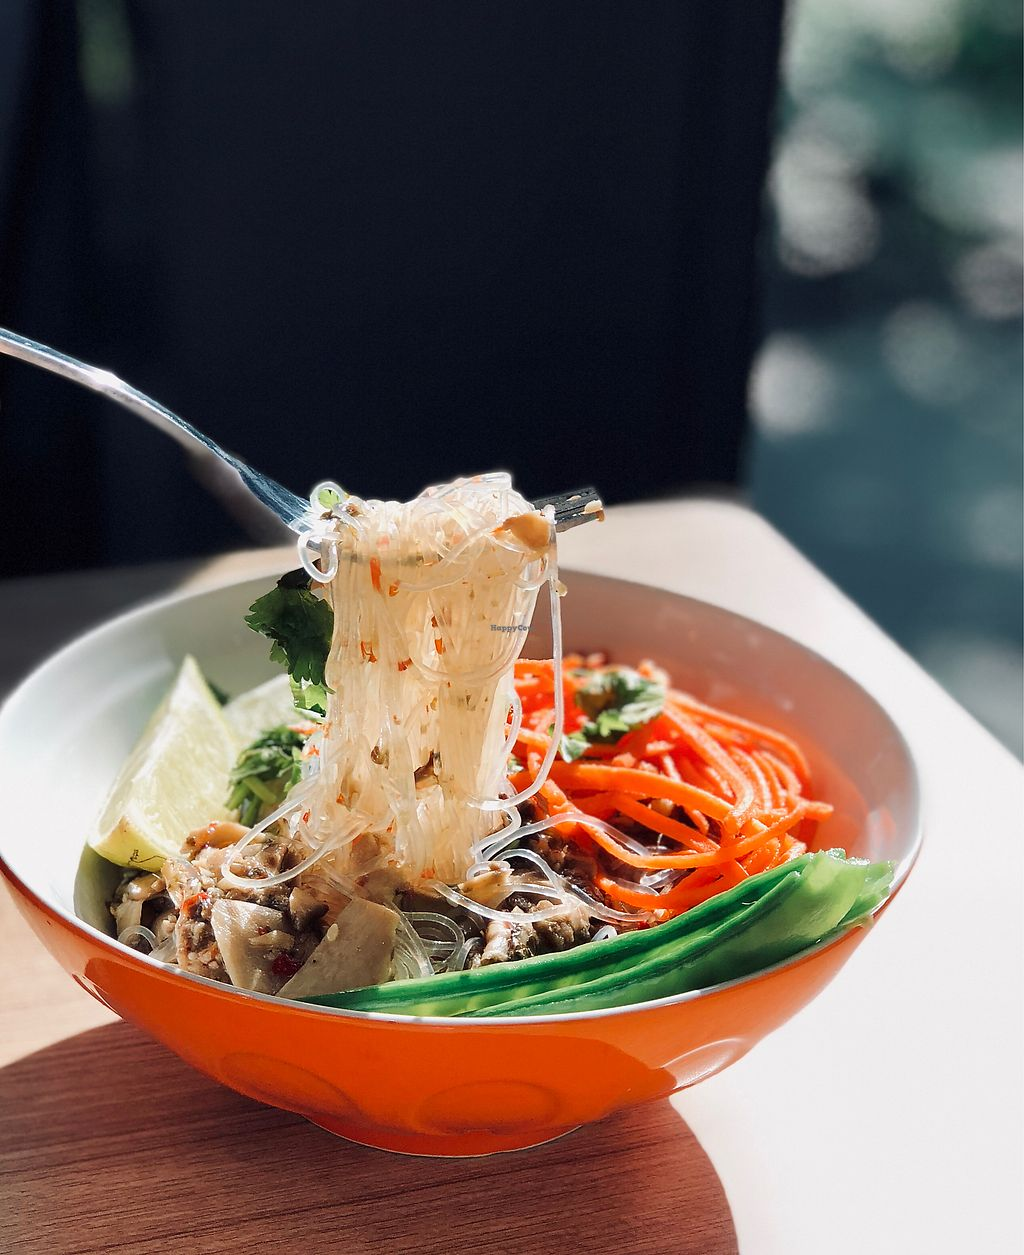 "Photo of The Soup Spoon - Khoo Teck Puat Hospital  by <a href=""/members/profile/CherylQuincy"">CherylQuincy</a> <br/>Thai Vermicelli with Mushrooms  <br/> March 17, 2018  - <a href='/contact/abuse/image/110696/371634'>Report</a>"